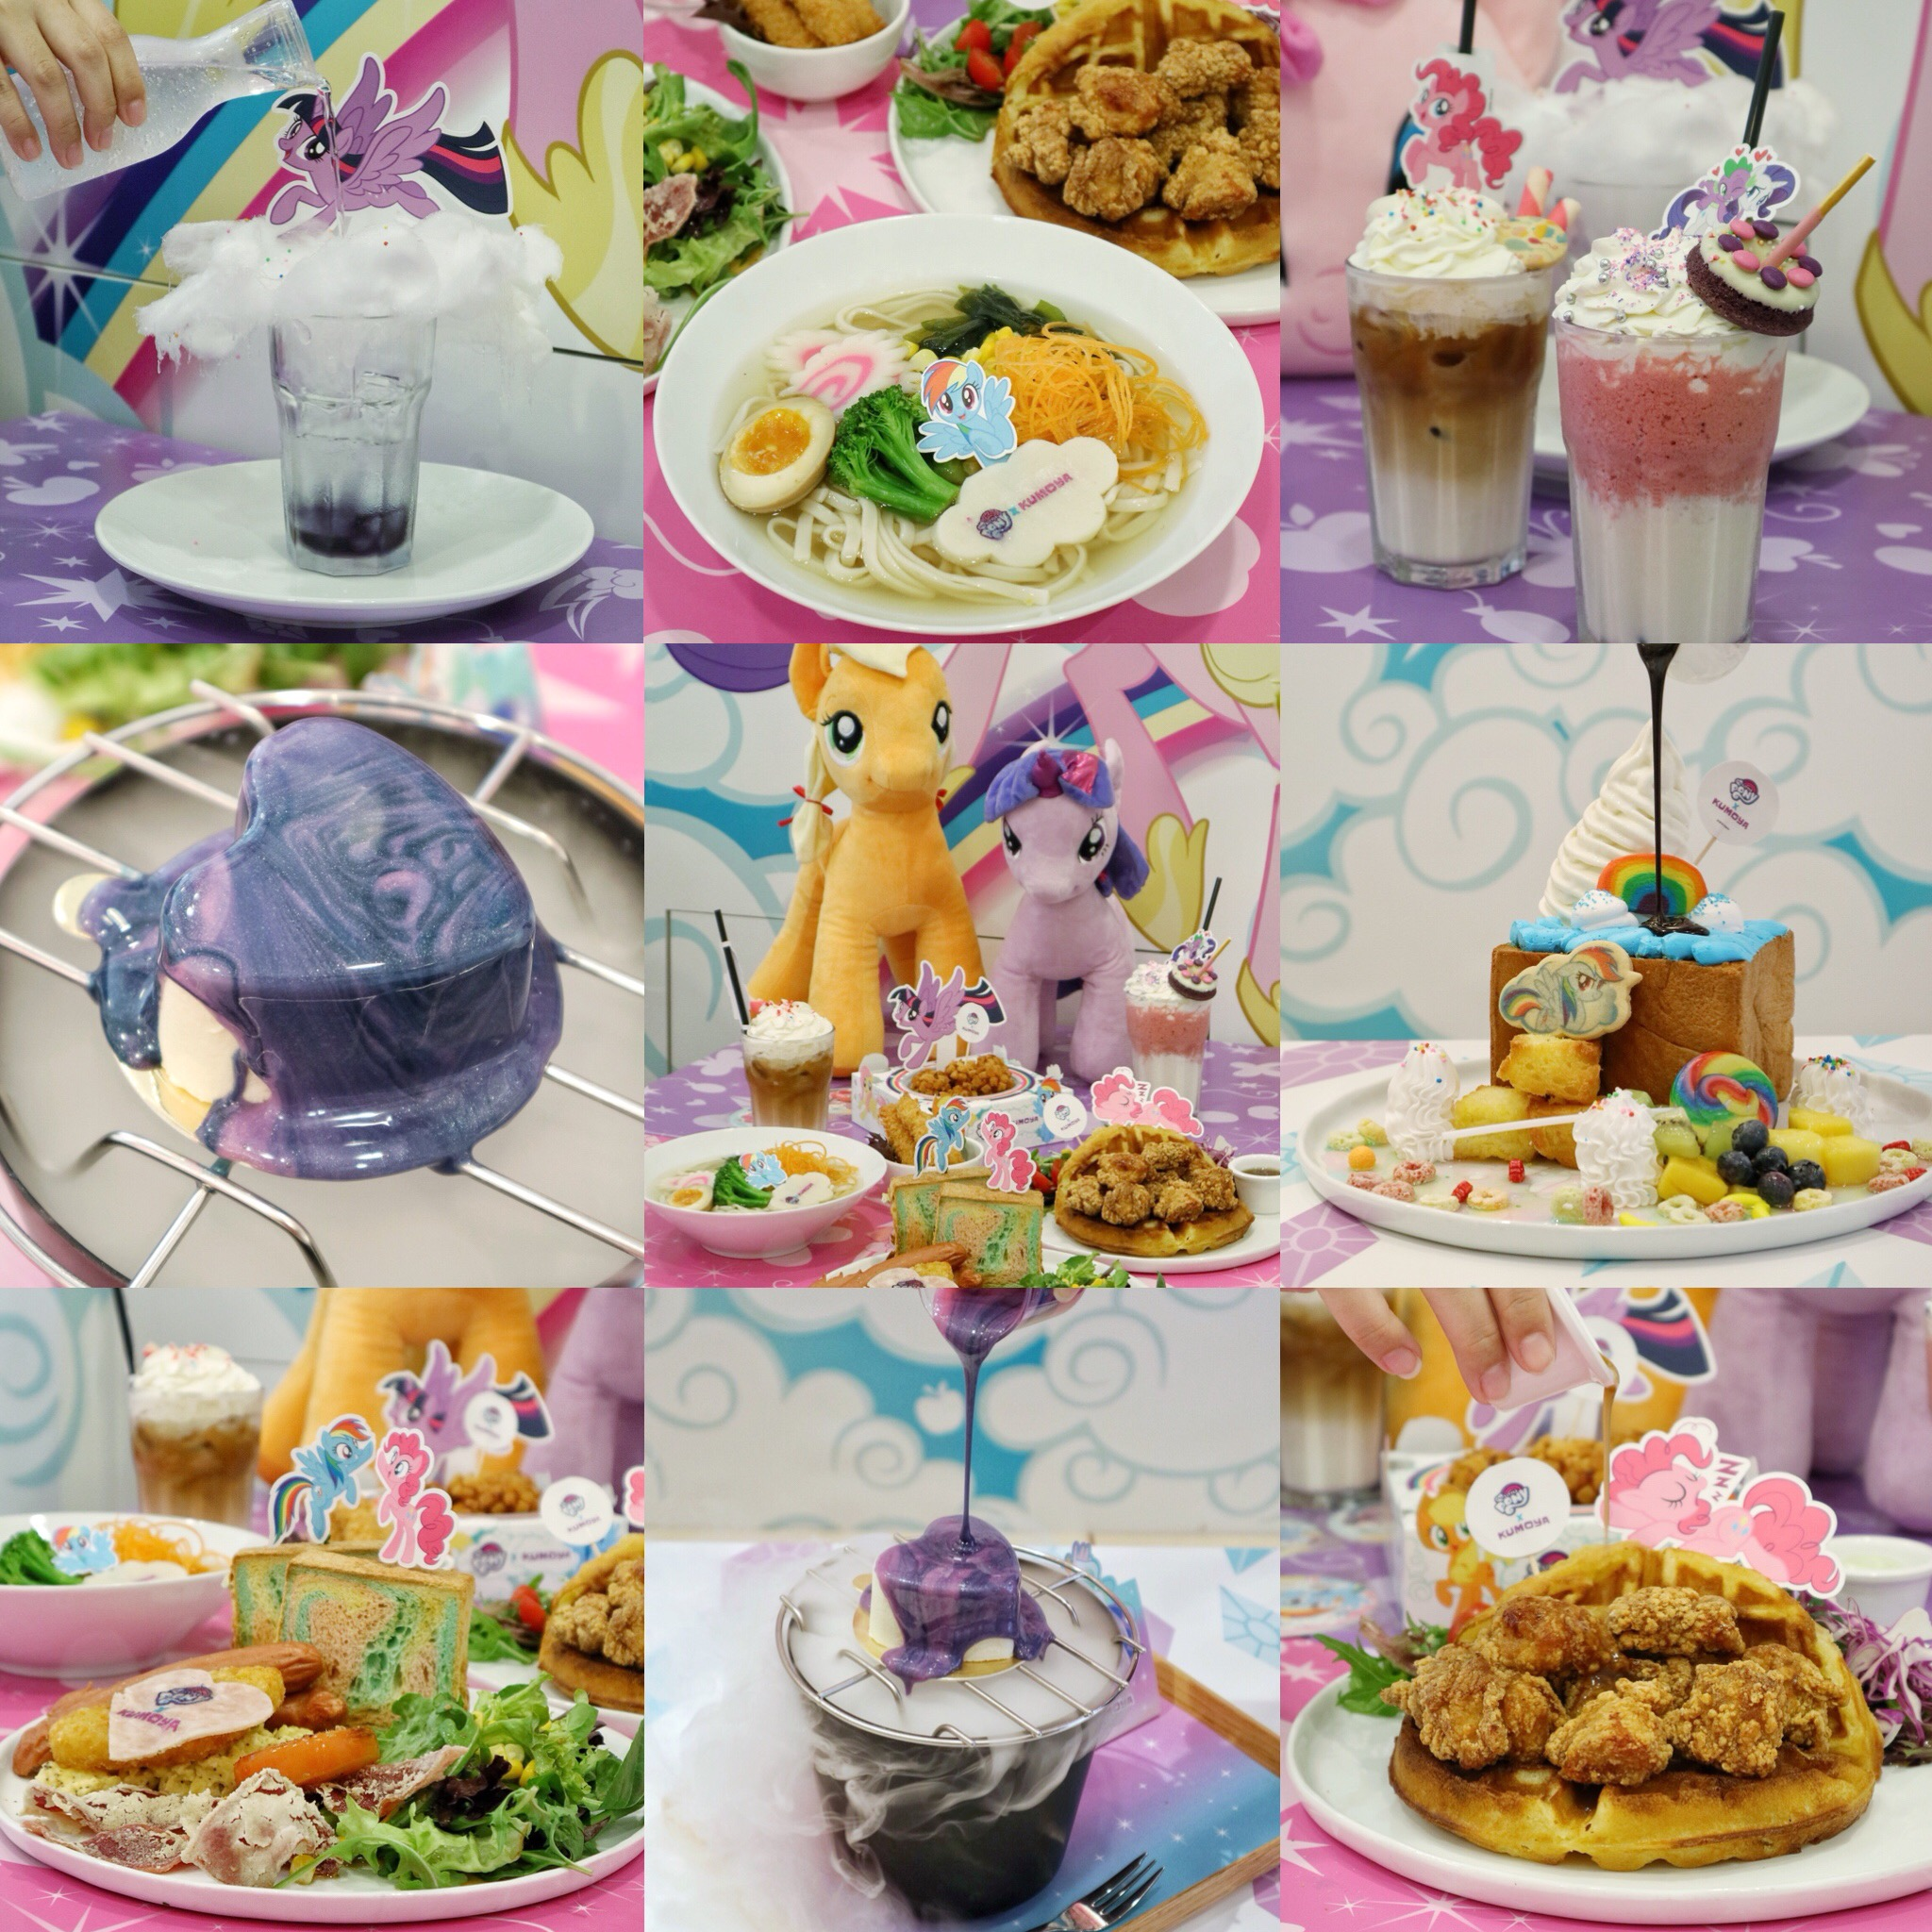 (NEW) Kumoya x My Little Pony Pop Up Cafe: Bringing Rainbow and Smiles this September!